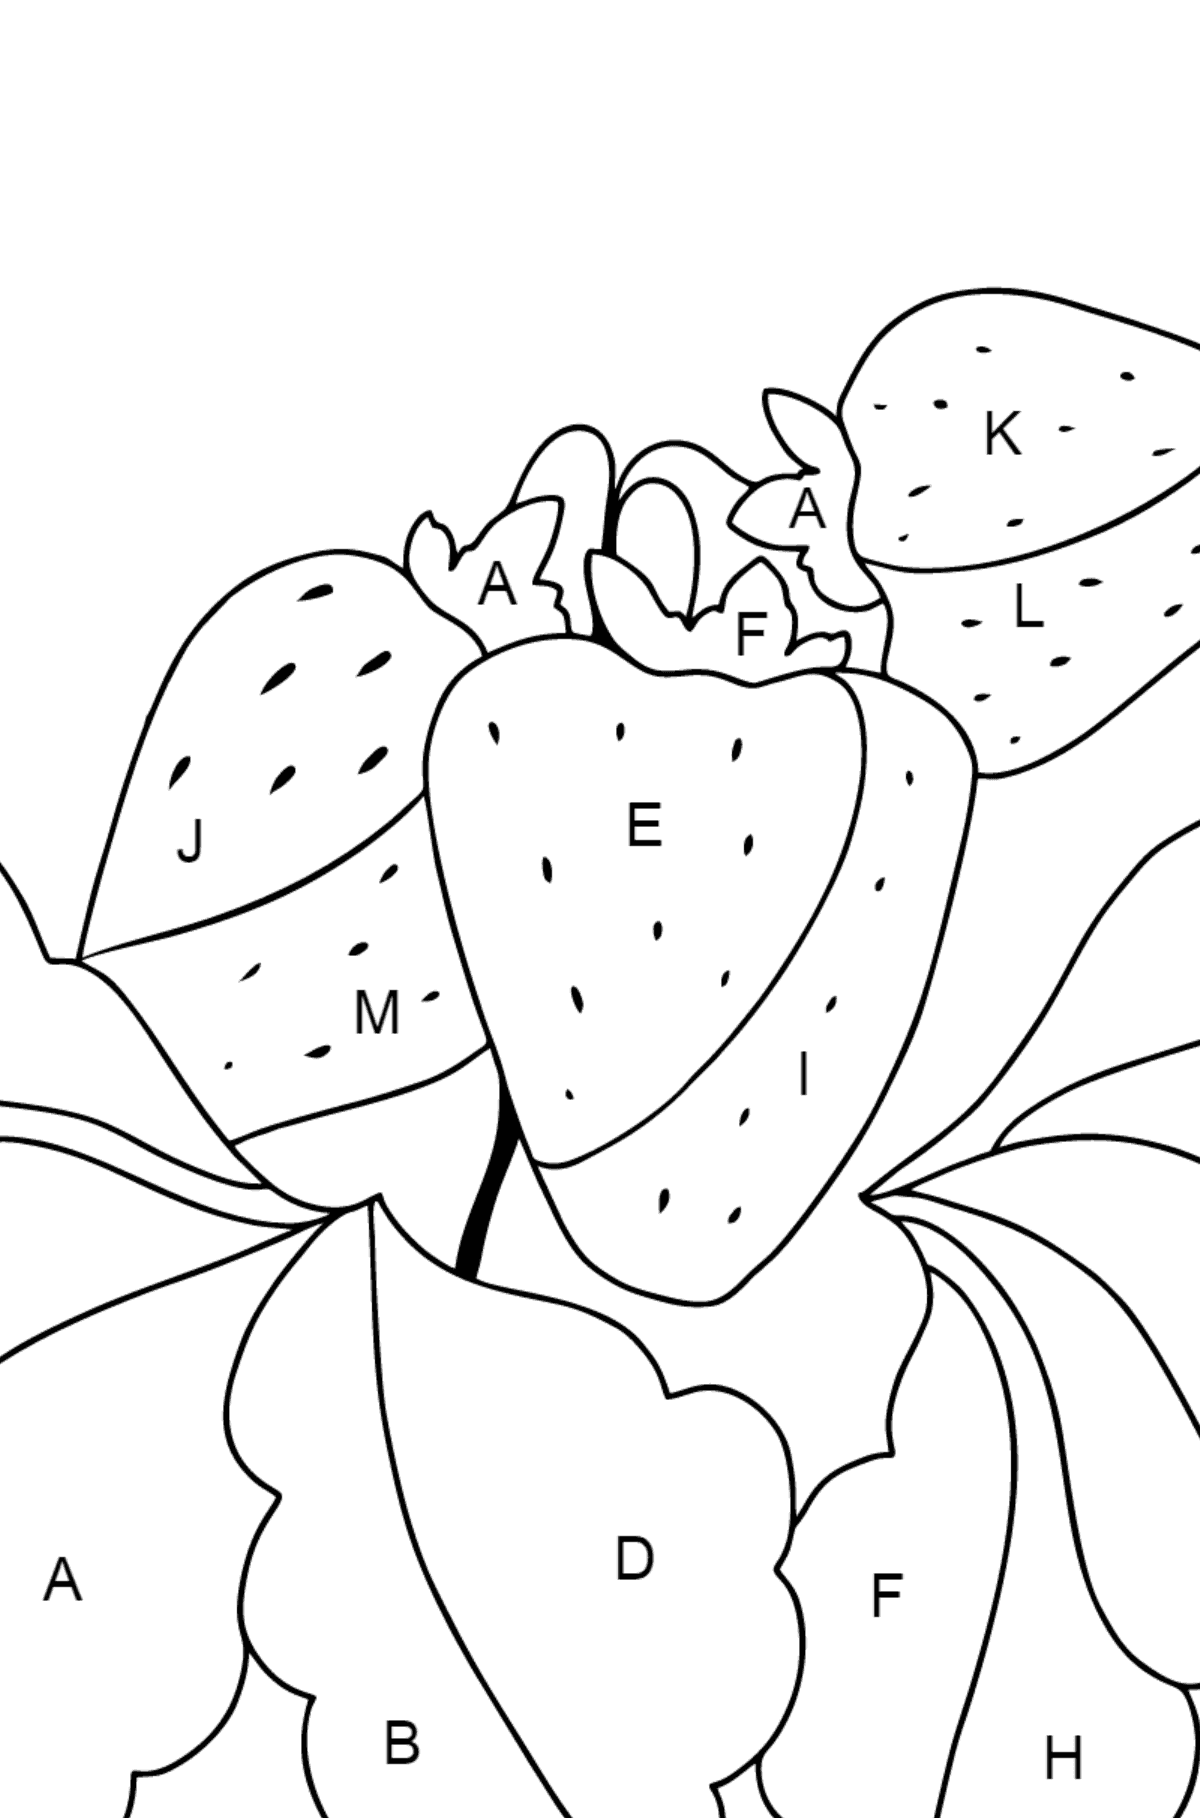 Summer Coloring Page - Strawberries are Ready on the Garden Bed - Coloring by Letters for Children